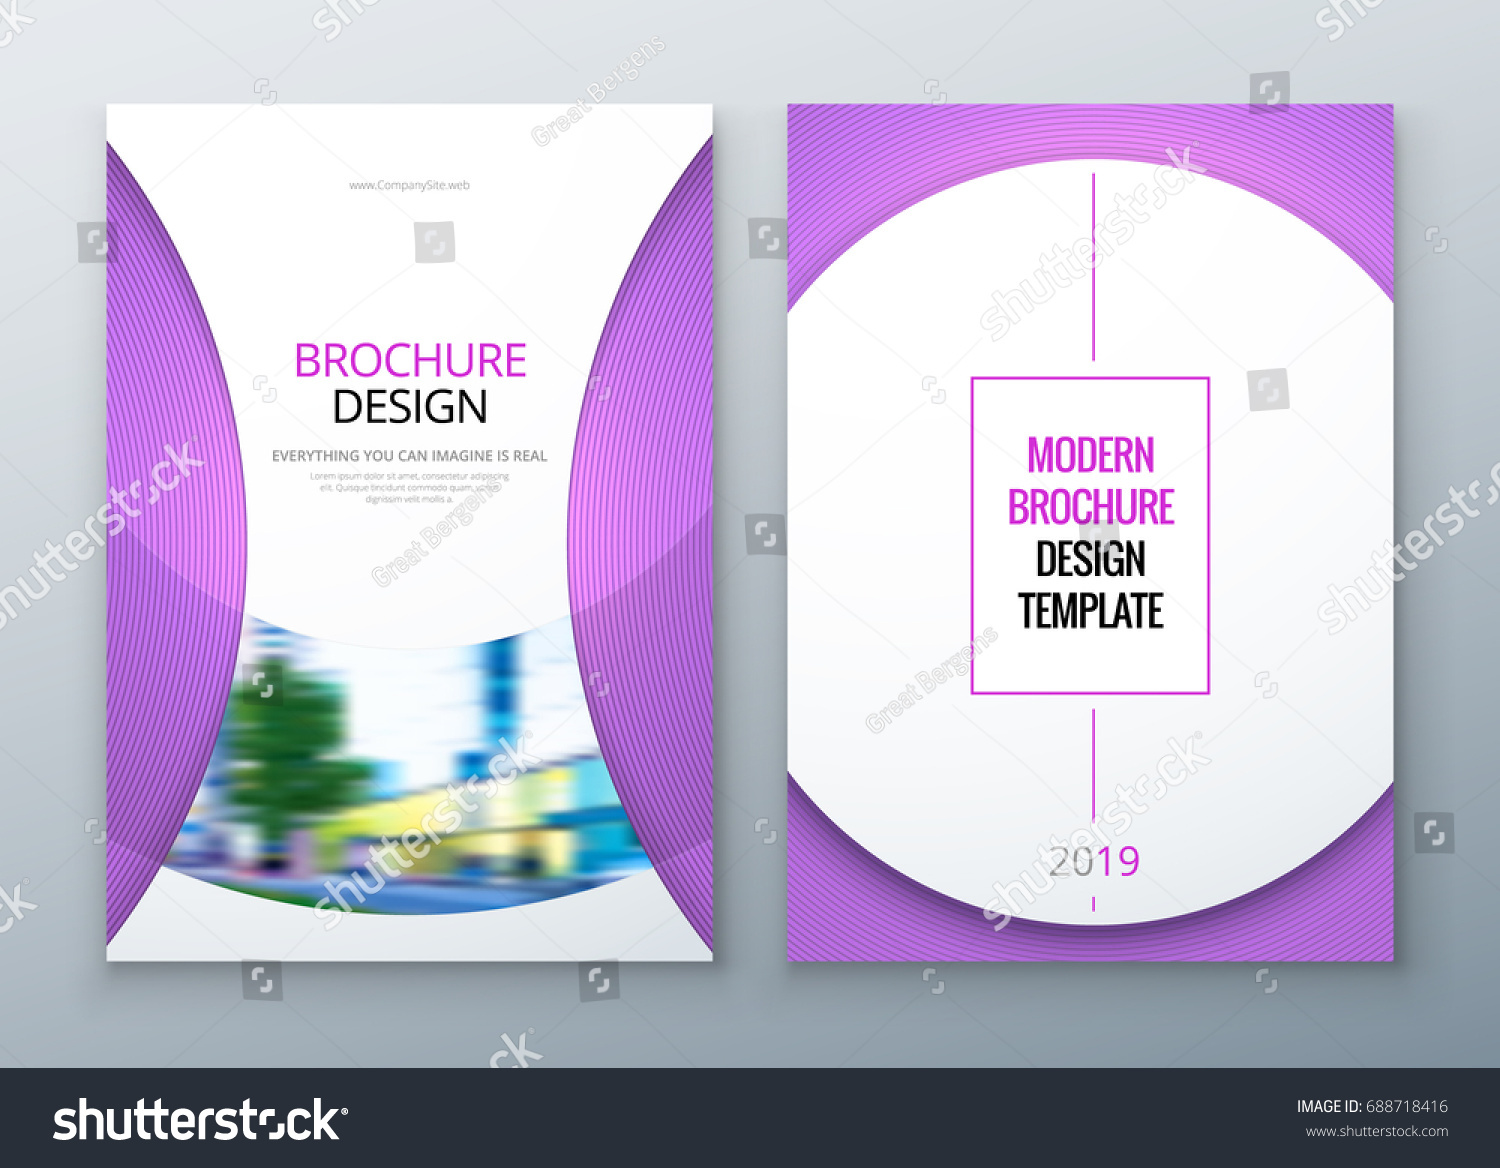 Brochure Template Layout Design Corporate Business Stock Vector ...